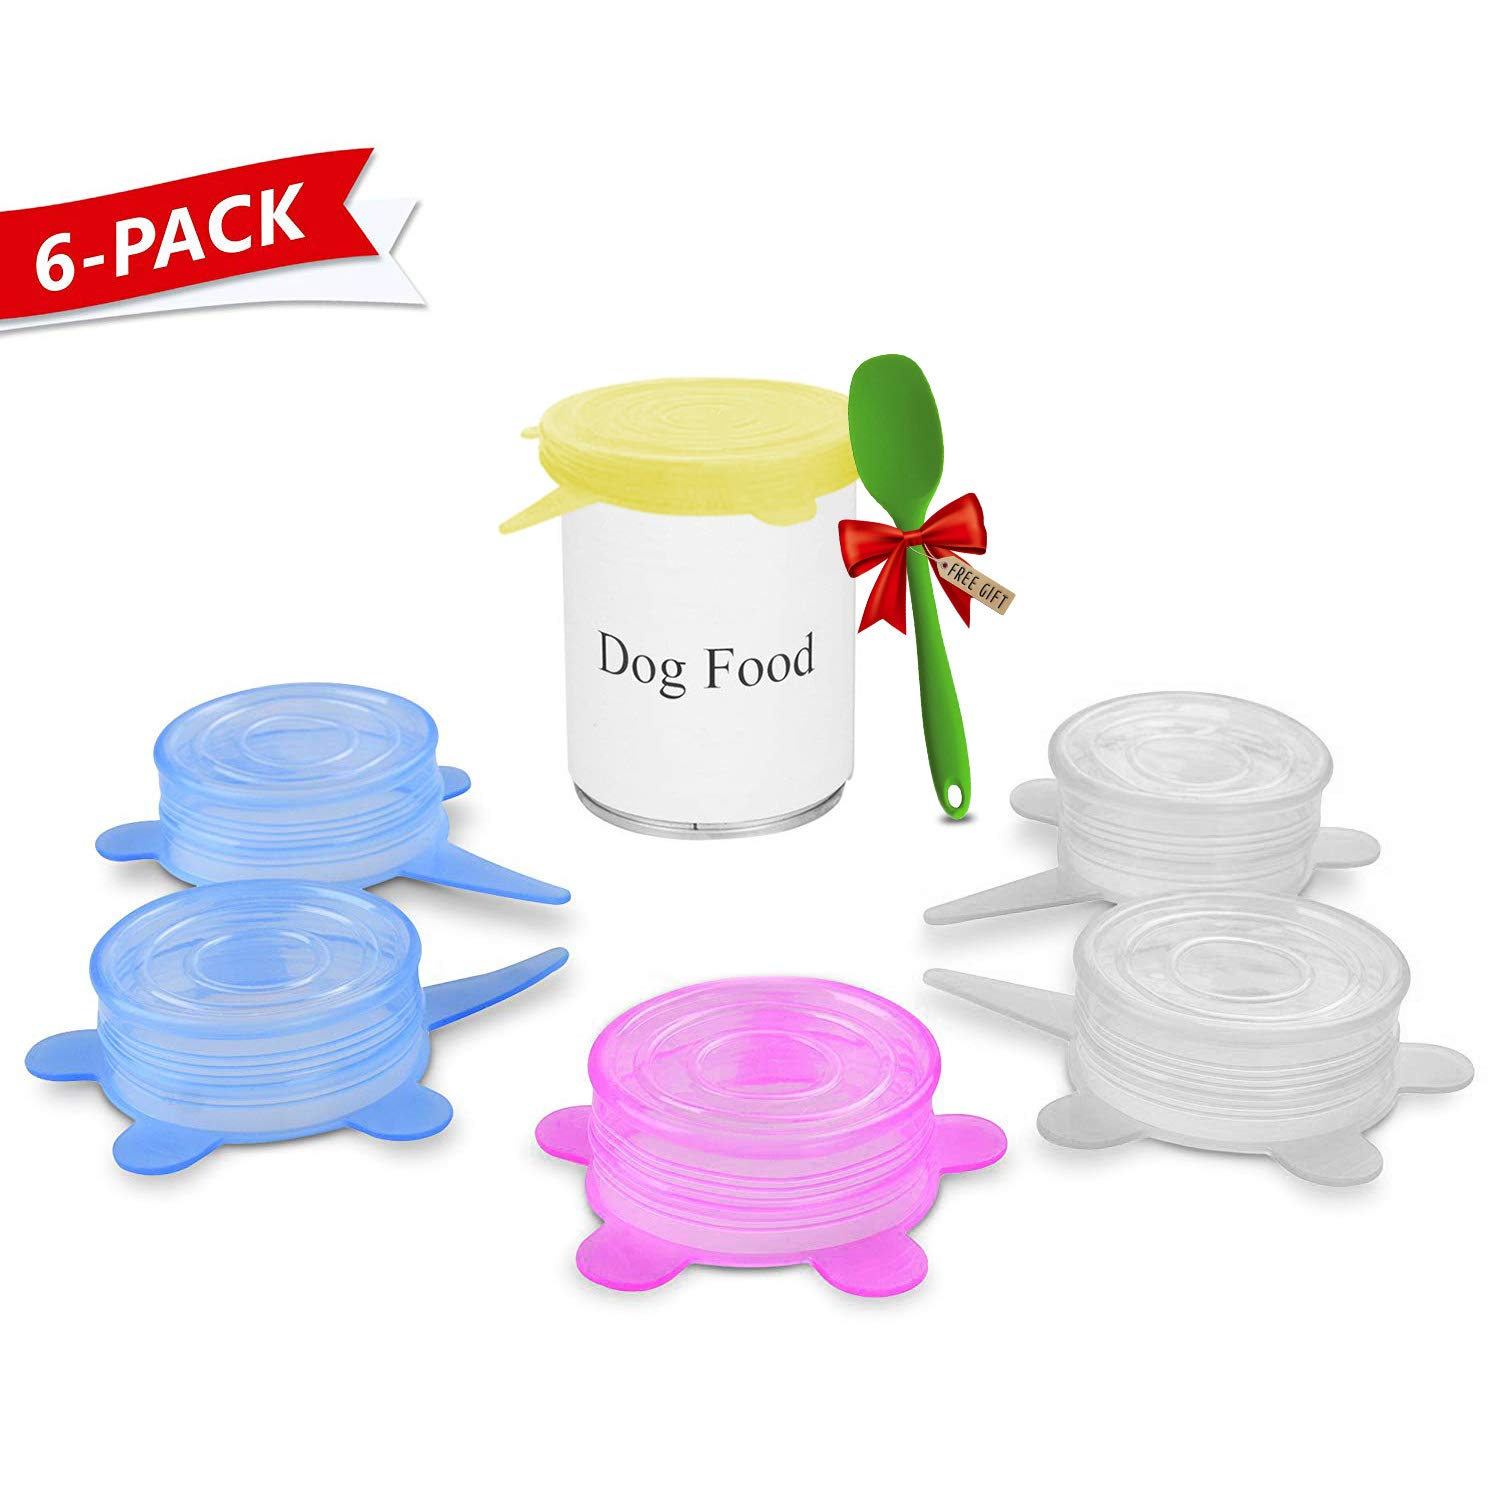 Trgowaul Can Covers/Universal Silicone Can Lids for Pet Food Cans/Fits Most Standard Size Dog and Cat Can Tops/100% FDA Certified Food Grade Silicone & BPA Free